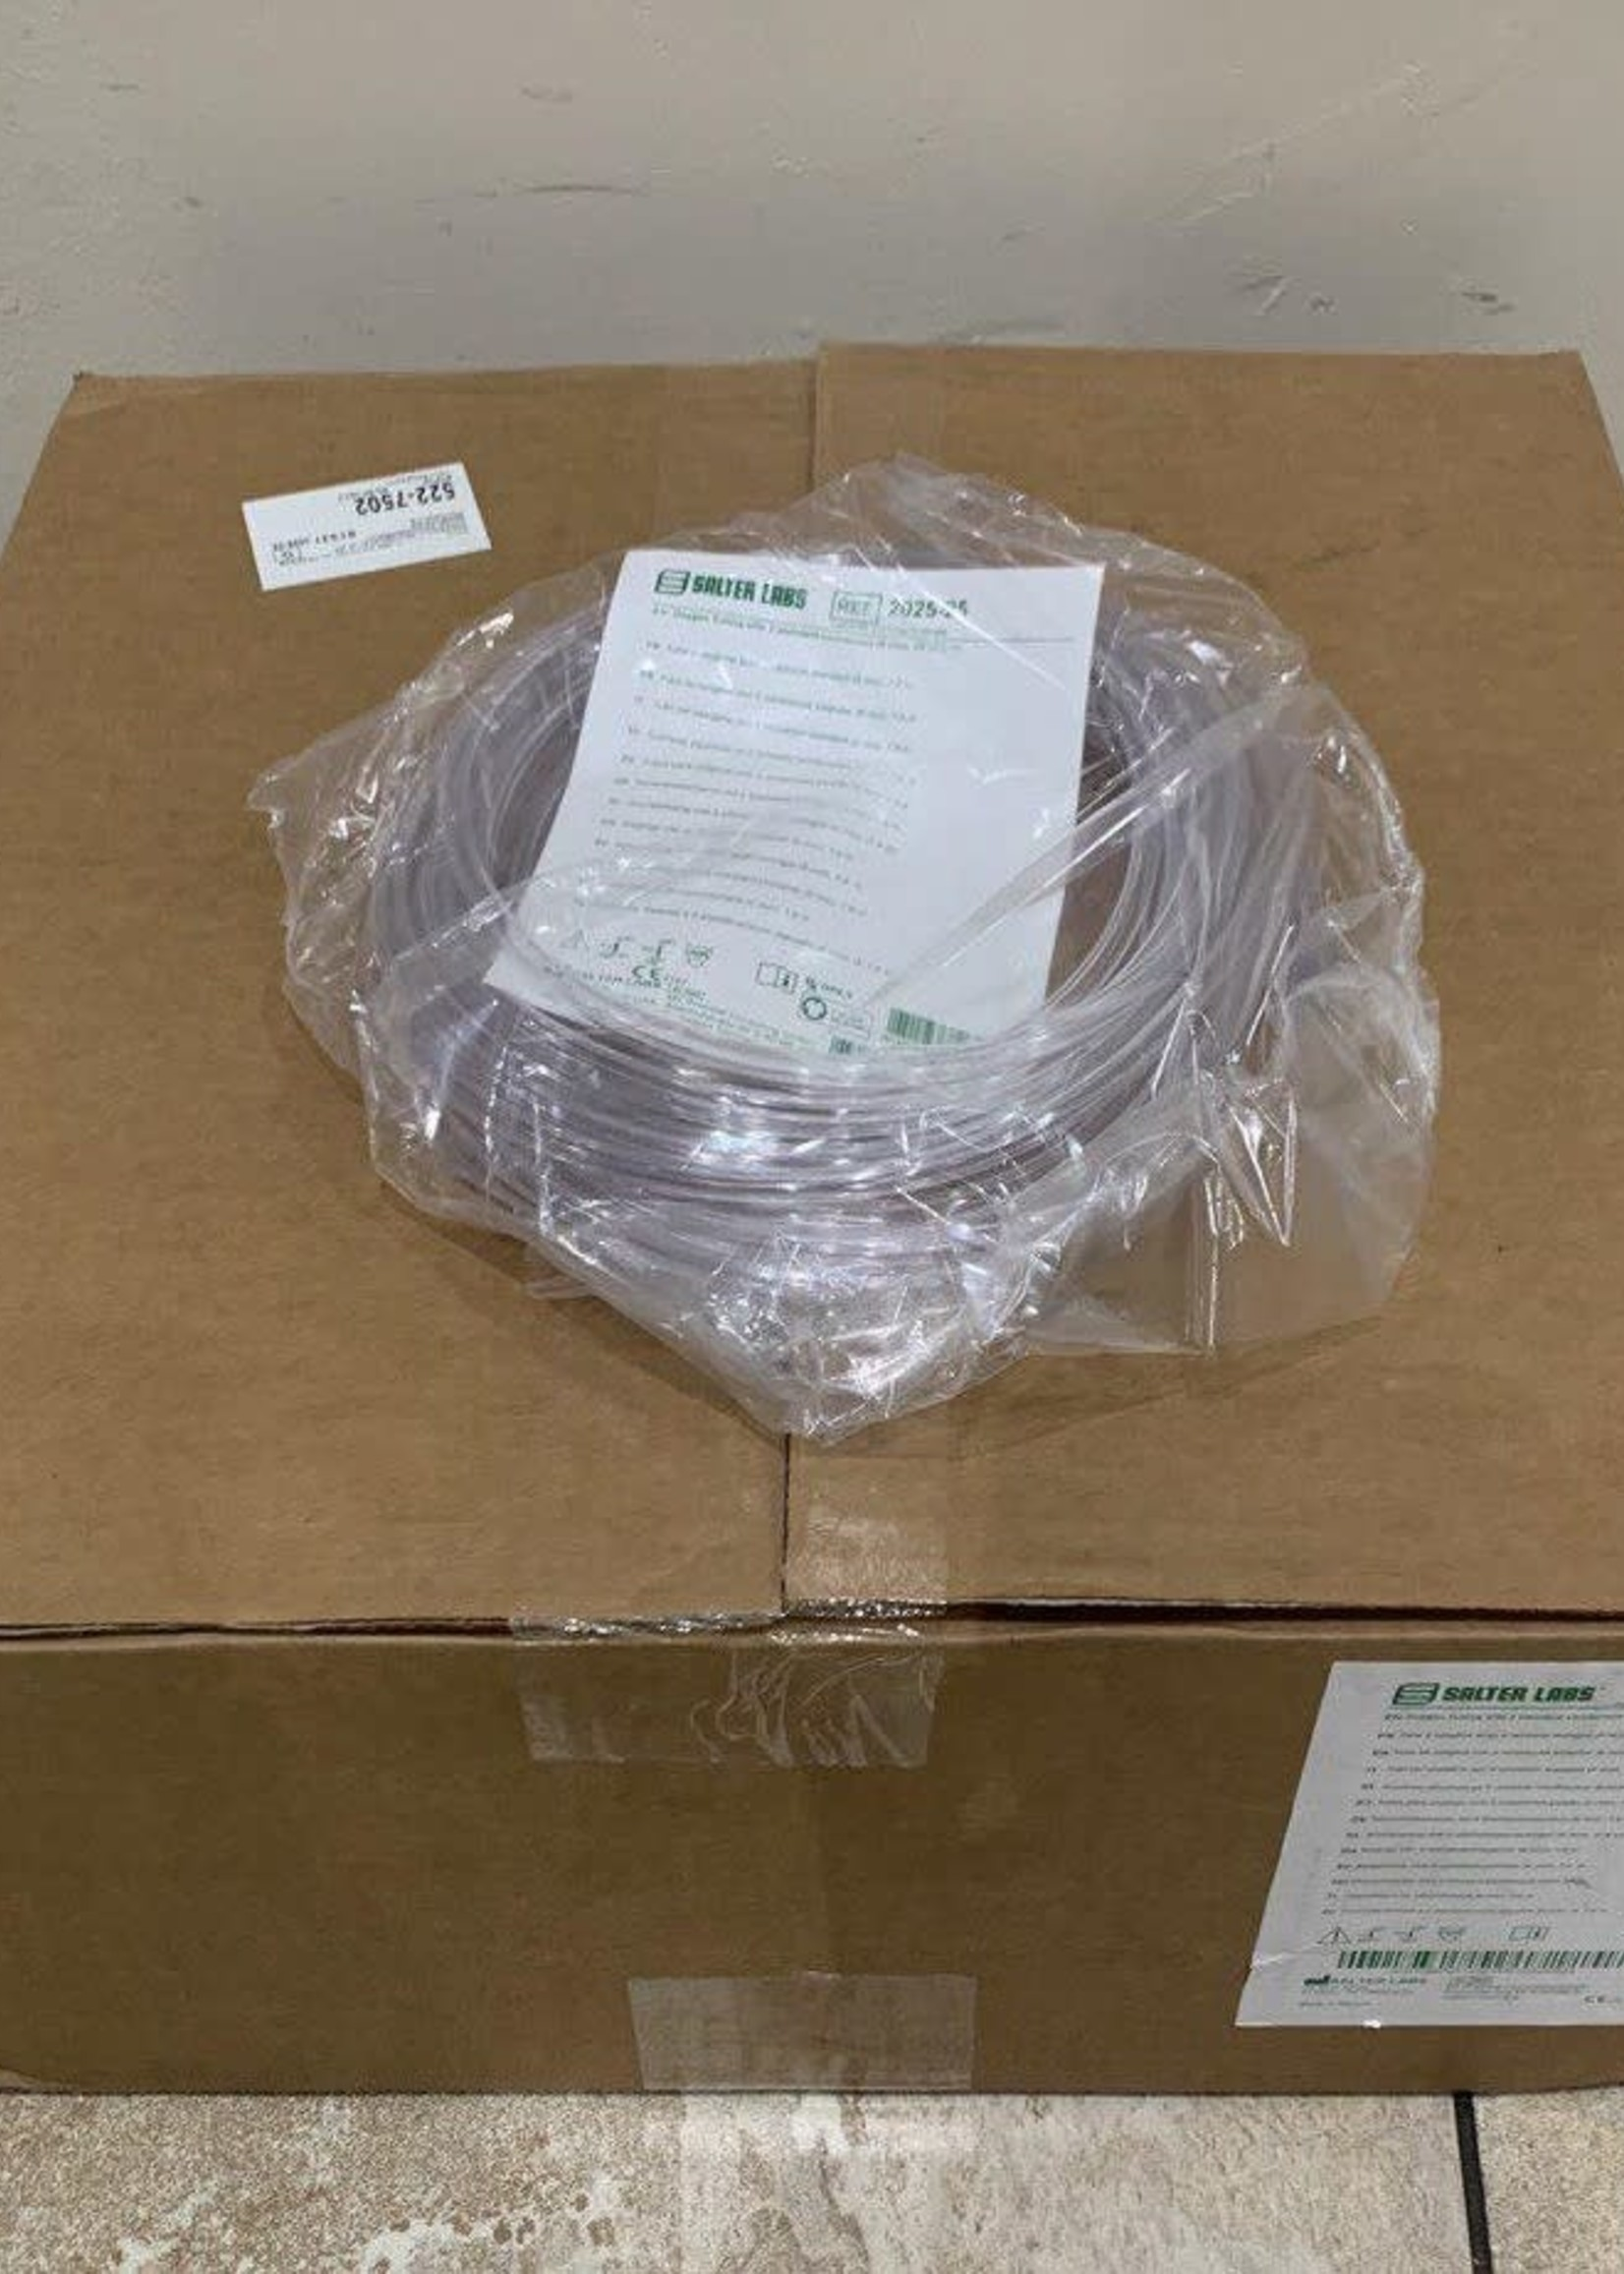 A Box of Oxygen Tubing With 2 Connectors